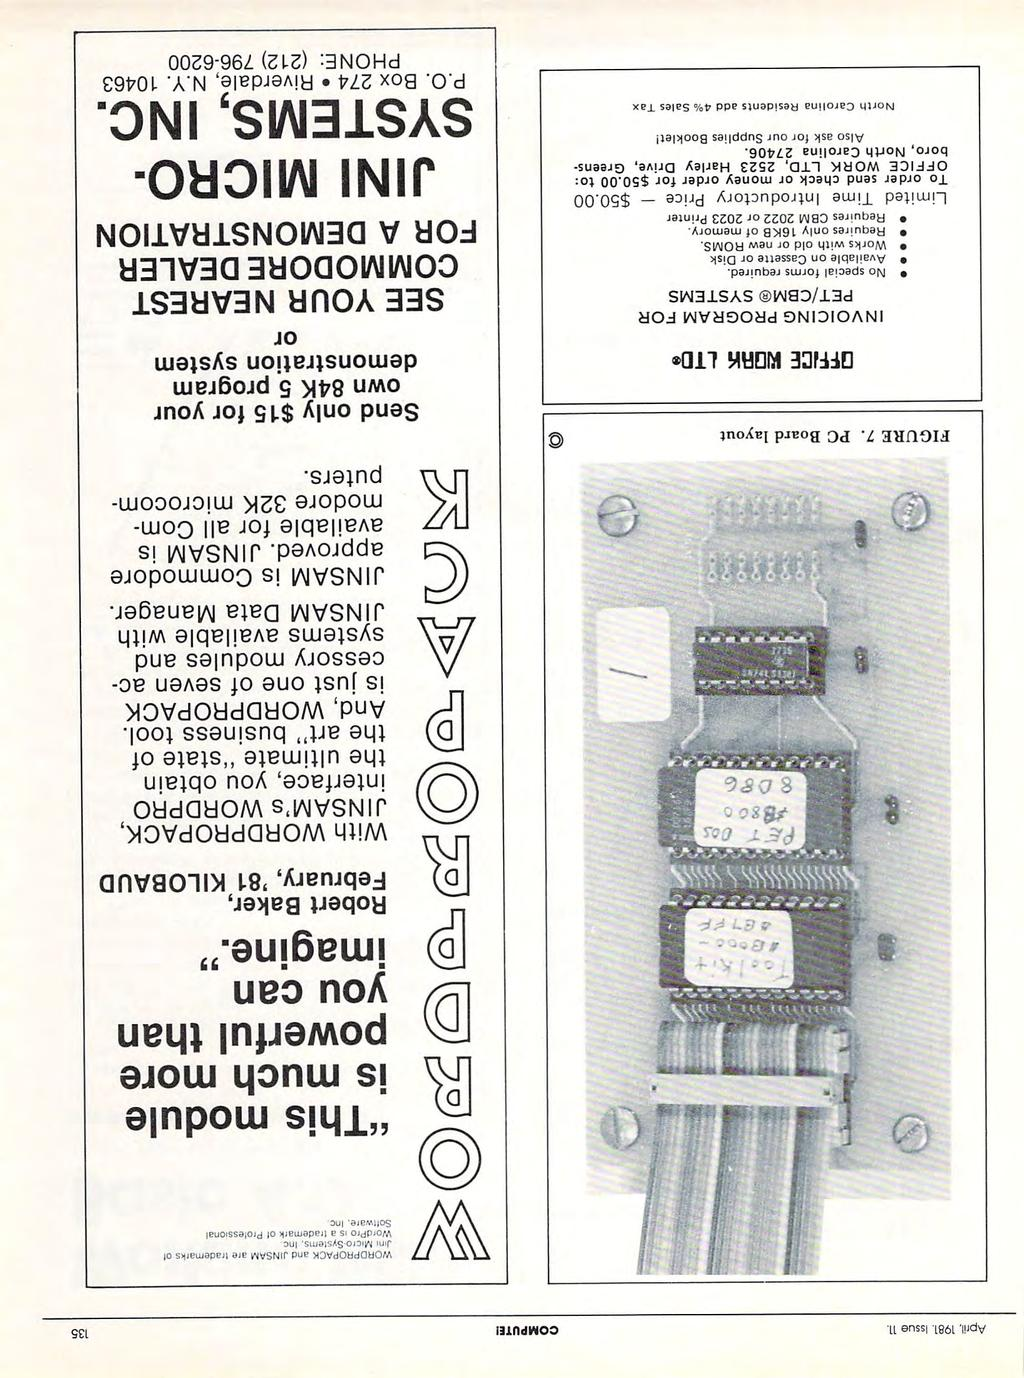 Software For The Atari800 Pdf 15a 1p Qo Circuit Breaker Rona April 1981 Issue It 11 Compute Computel 135 Wordpropack